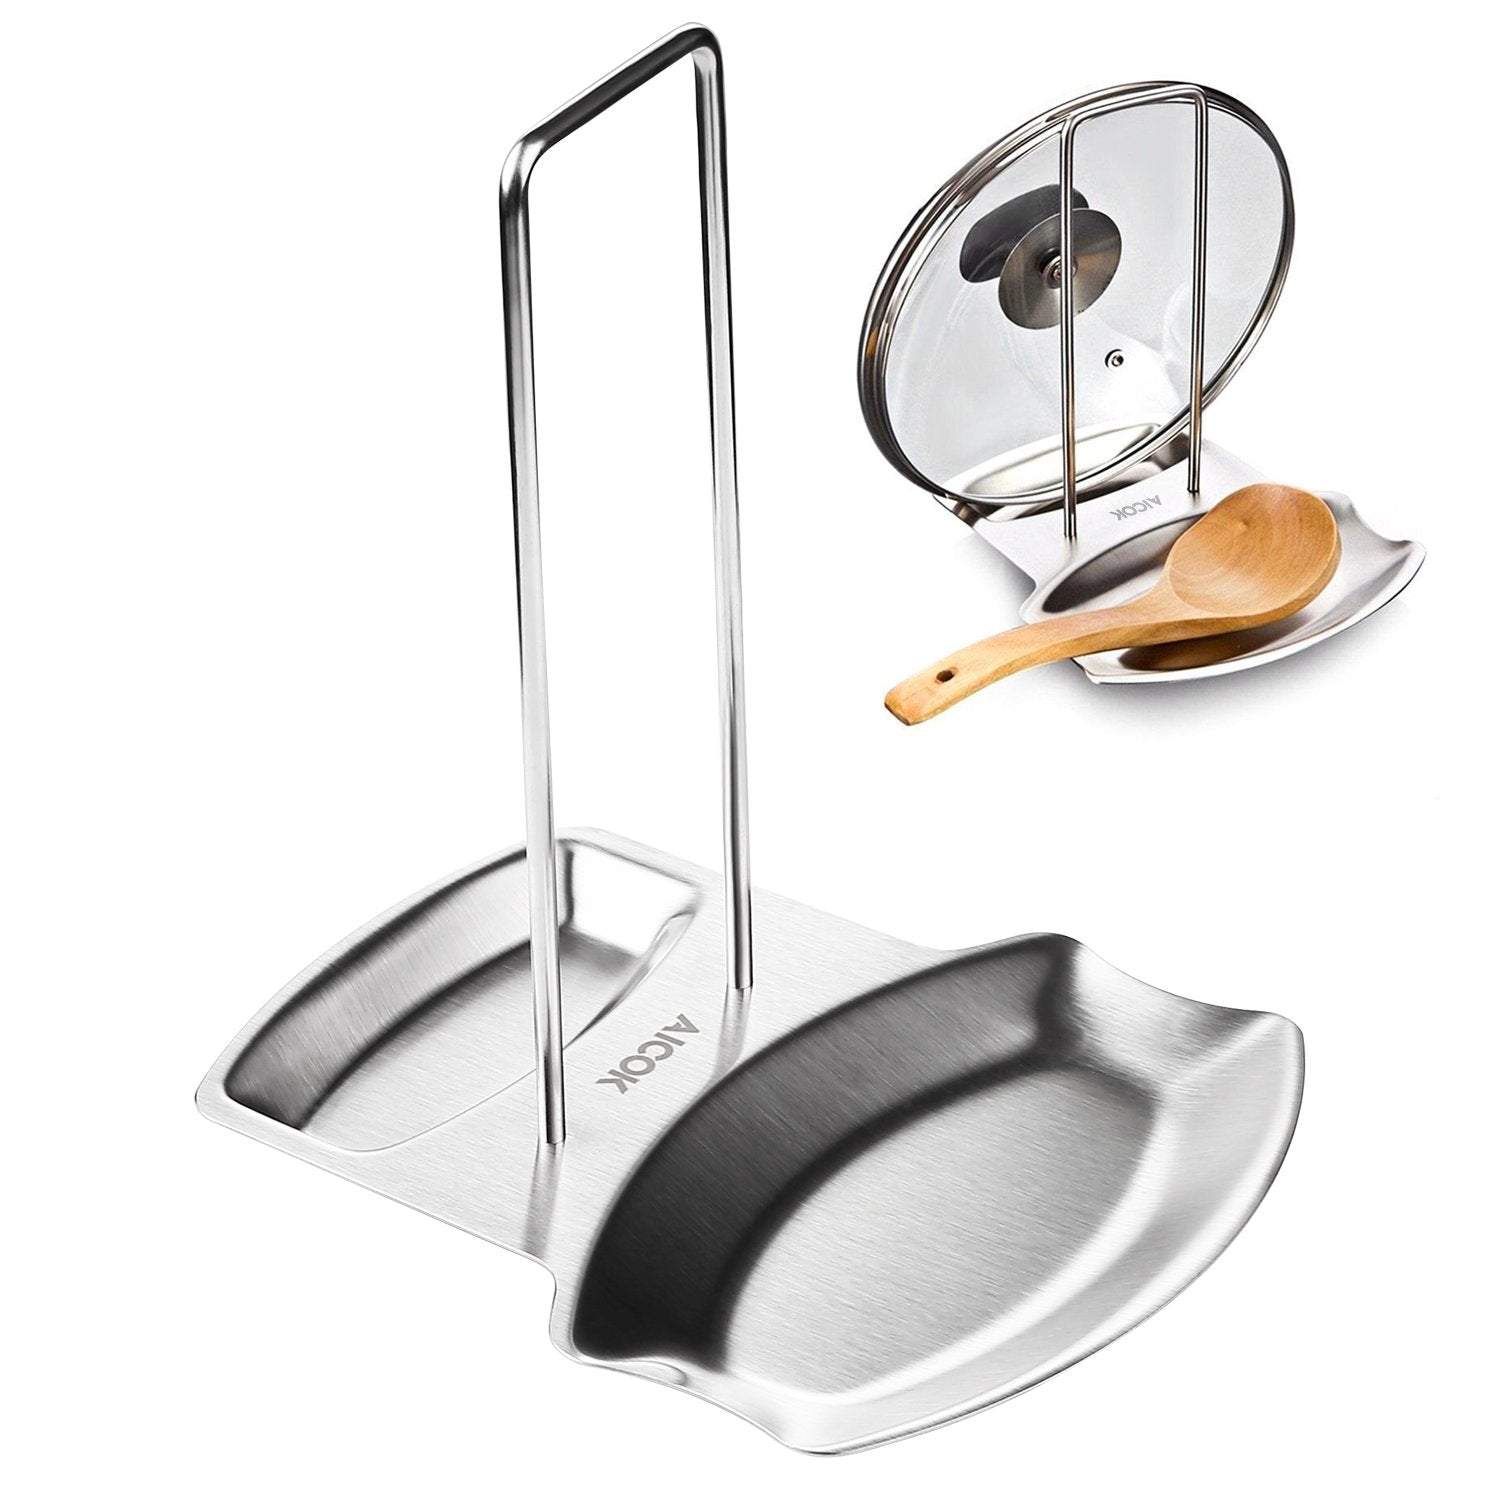 Aicok Lid and Spoon Rest, Utensils Lid Holder Spoon Holder Lid Rest Lid Shelf Kitchen Utensils Holders Stainless Steel in Silver, Thick Stainless Steel